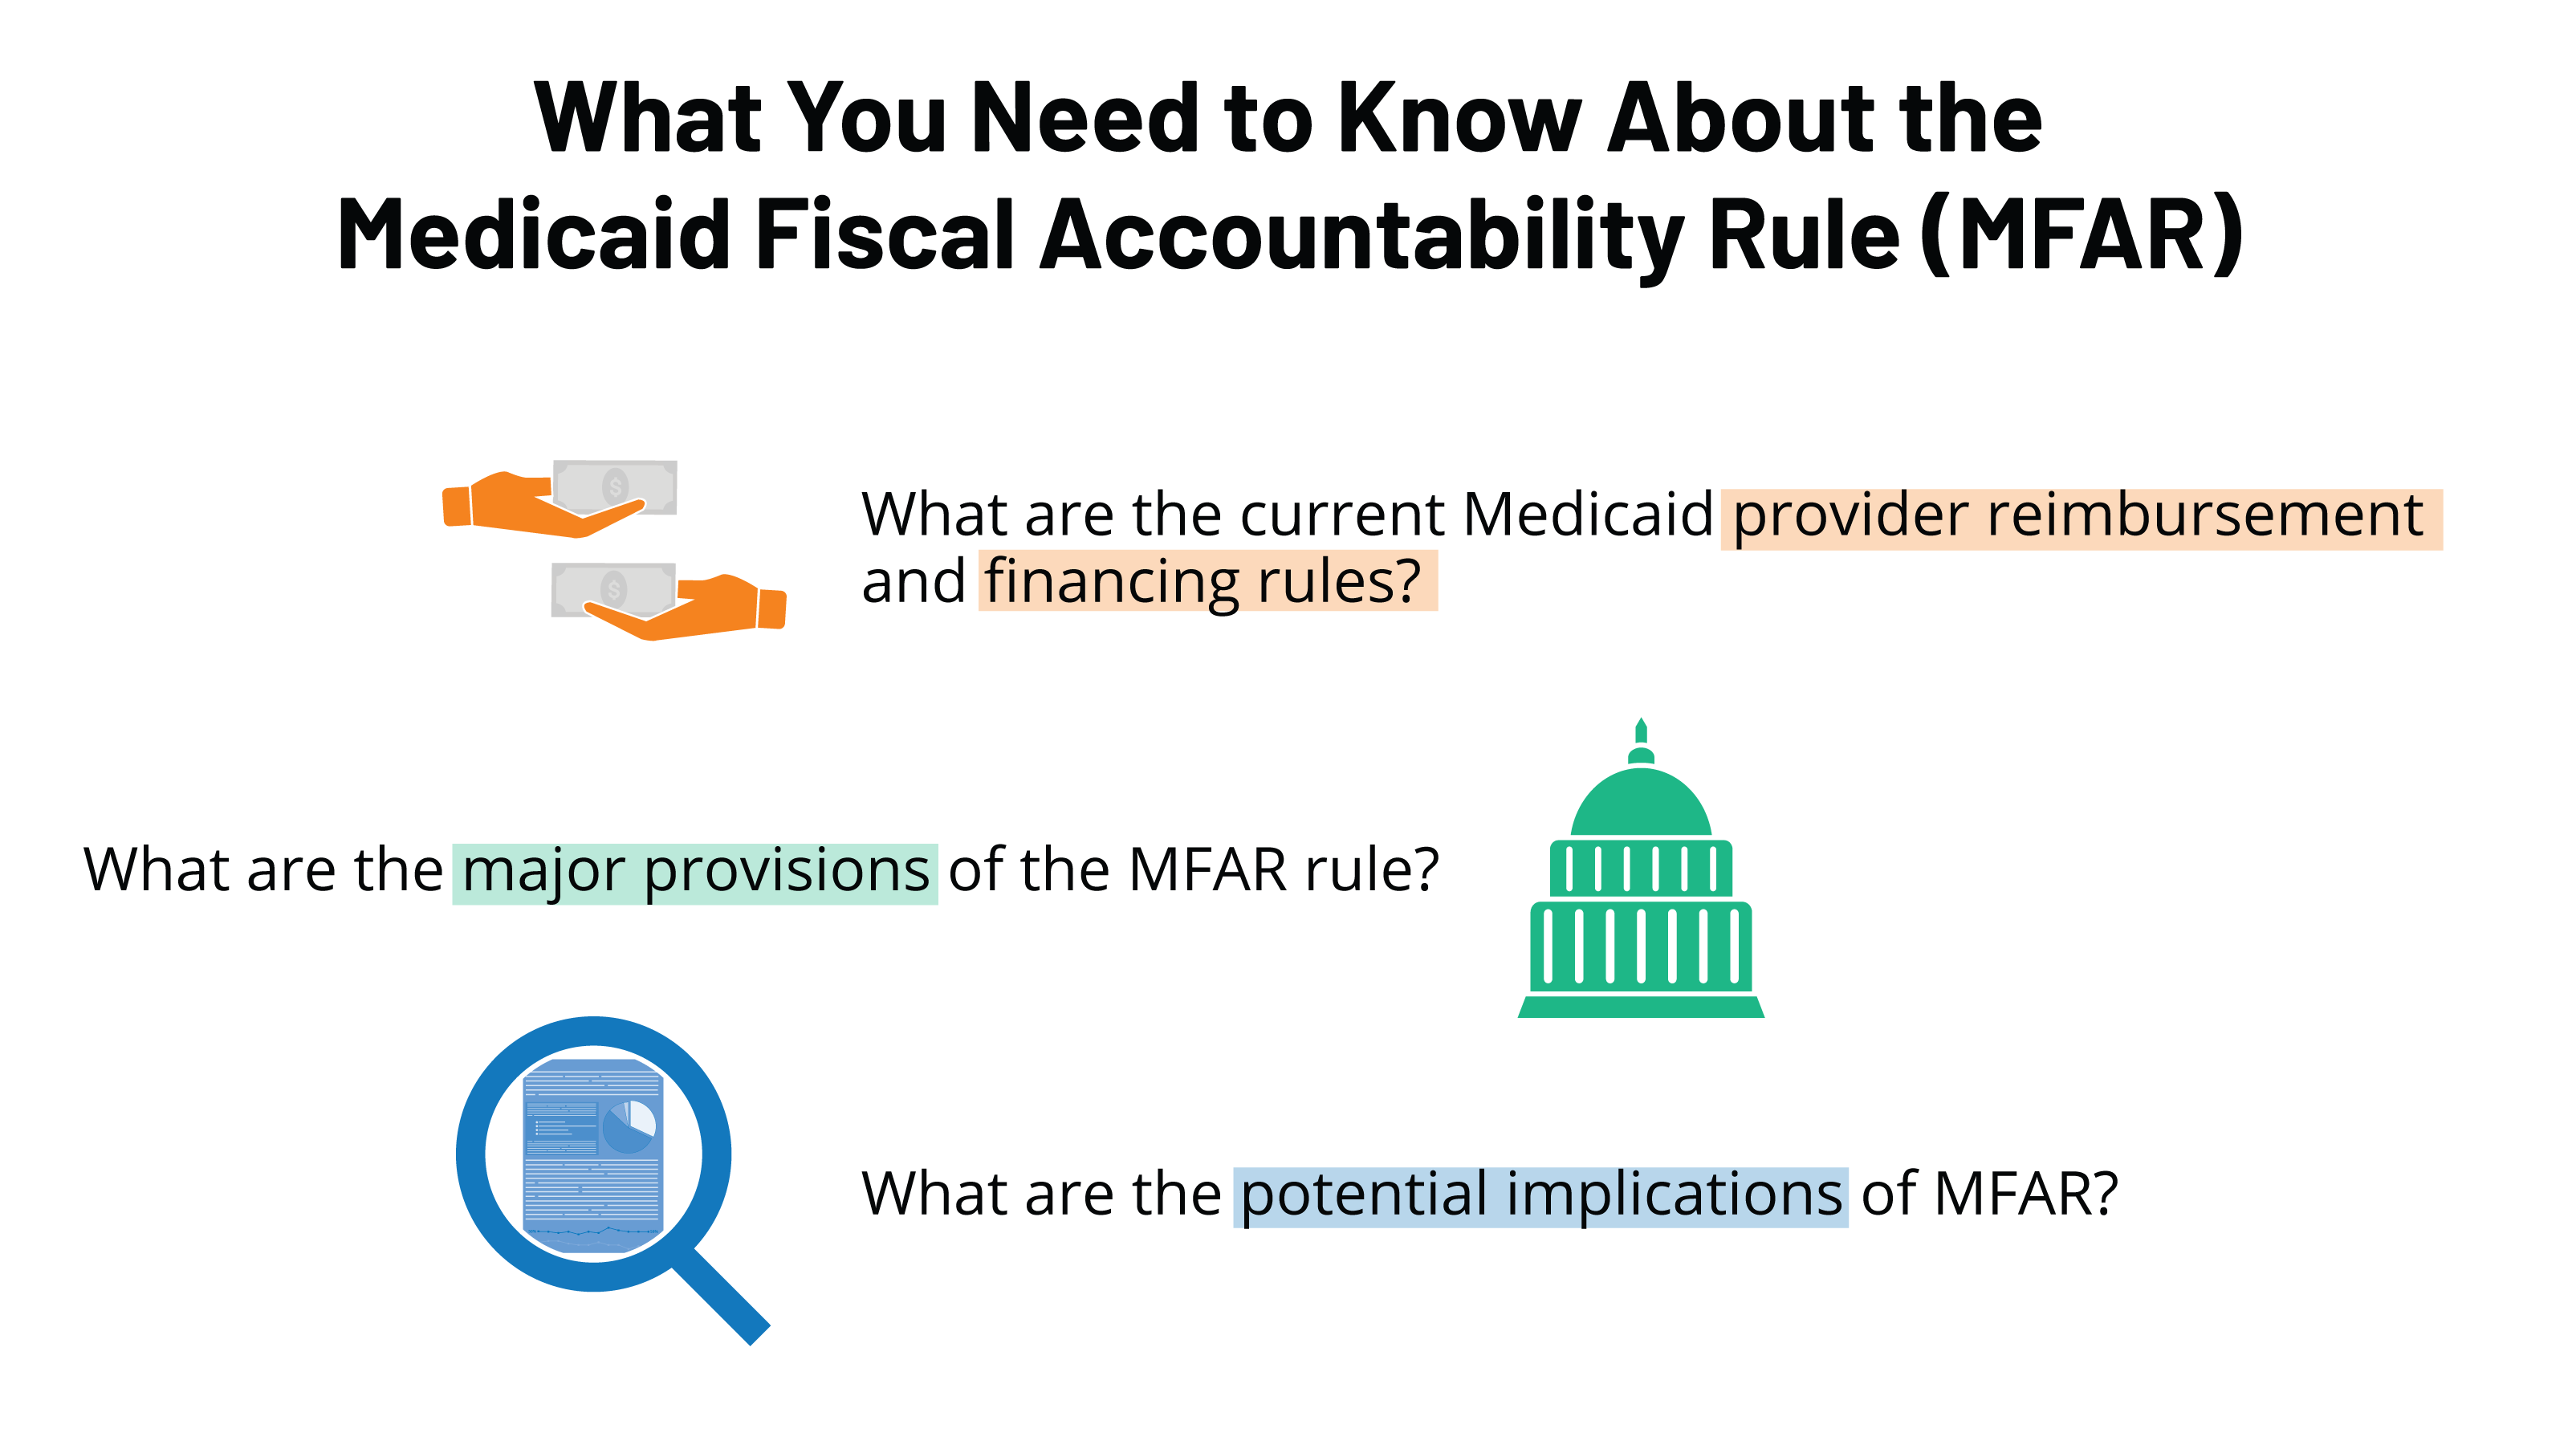 What You Need to Know About the Medicaid Fiscal Accountability Rule (MFAR)  | KFF